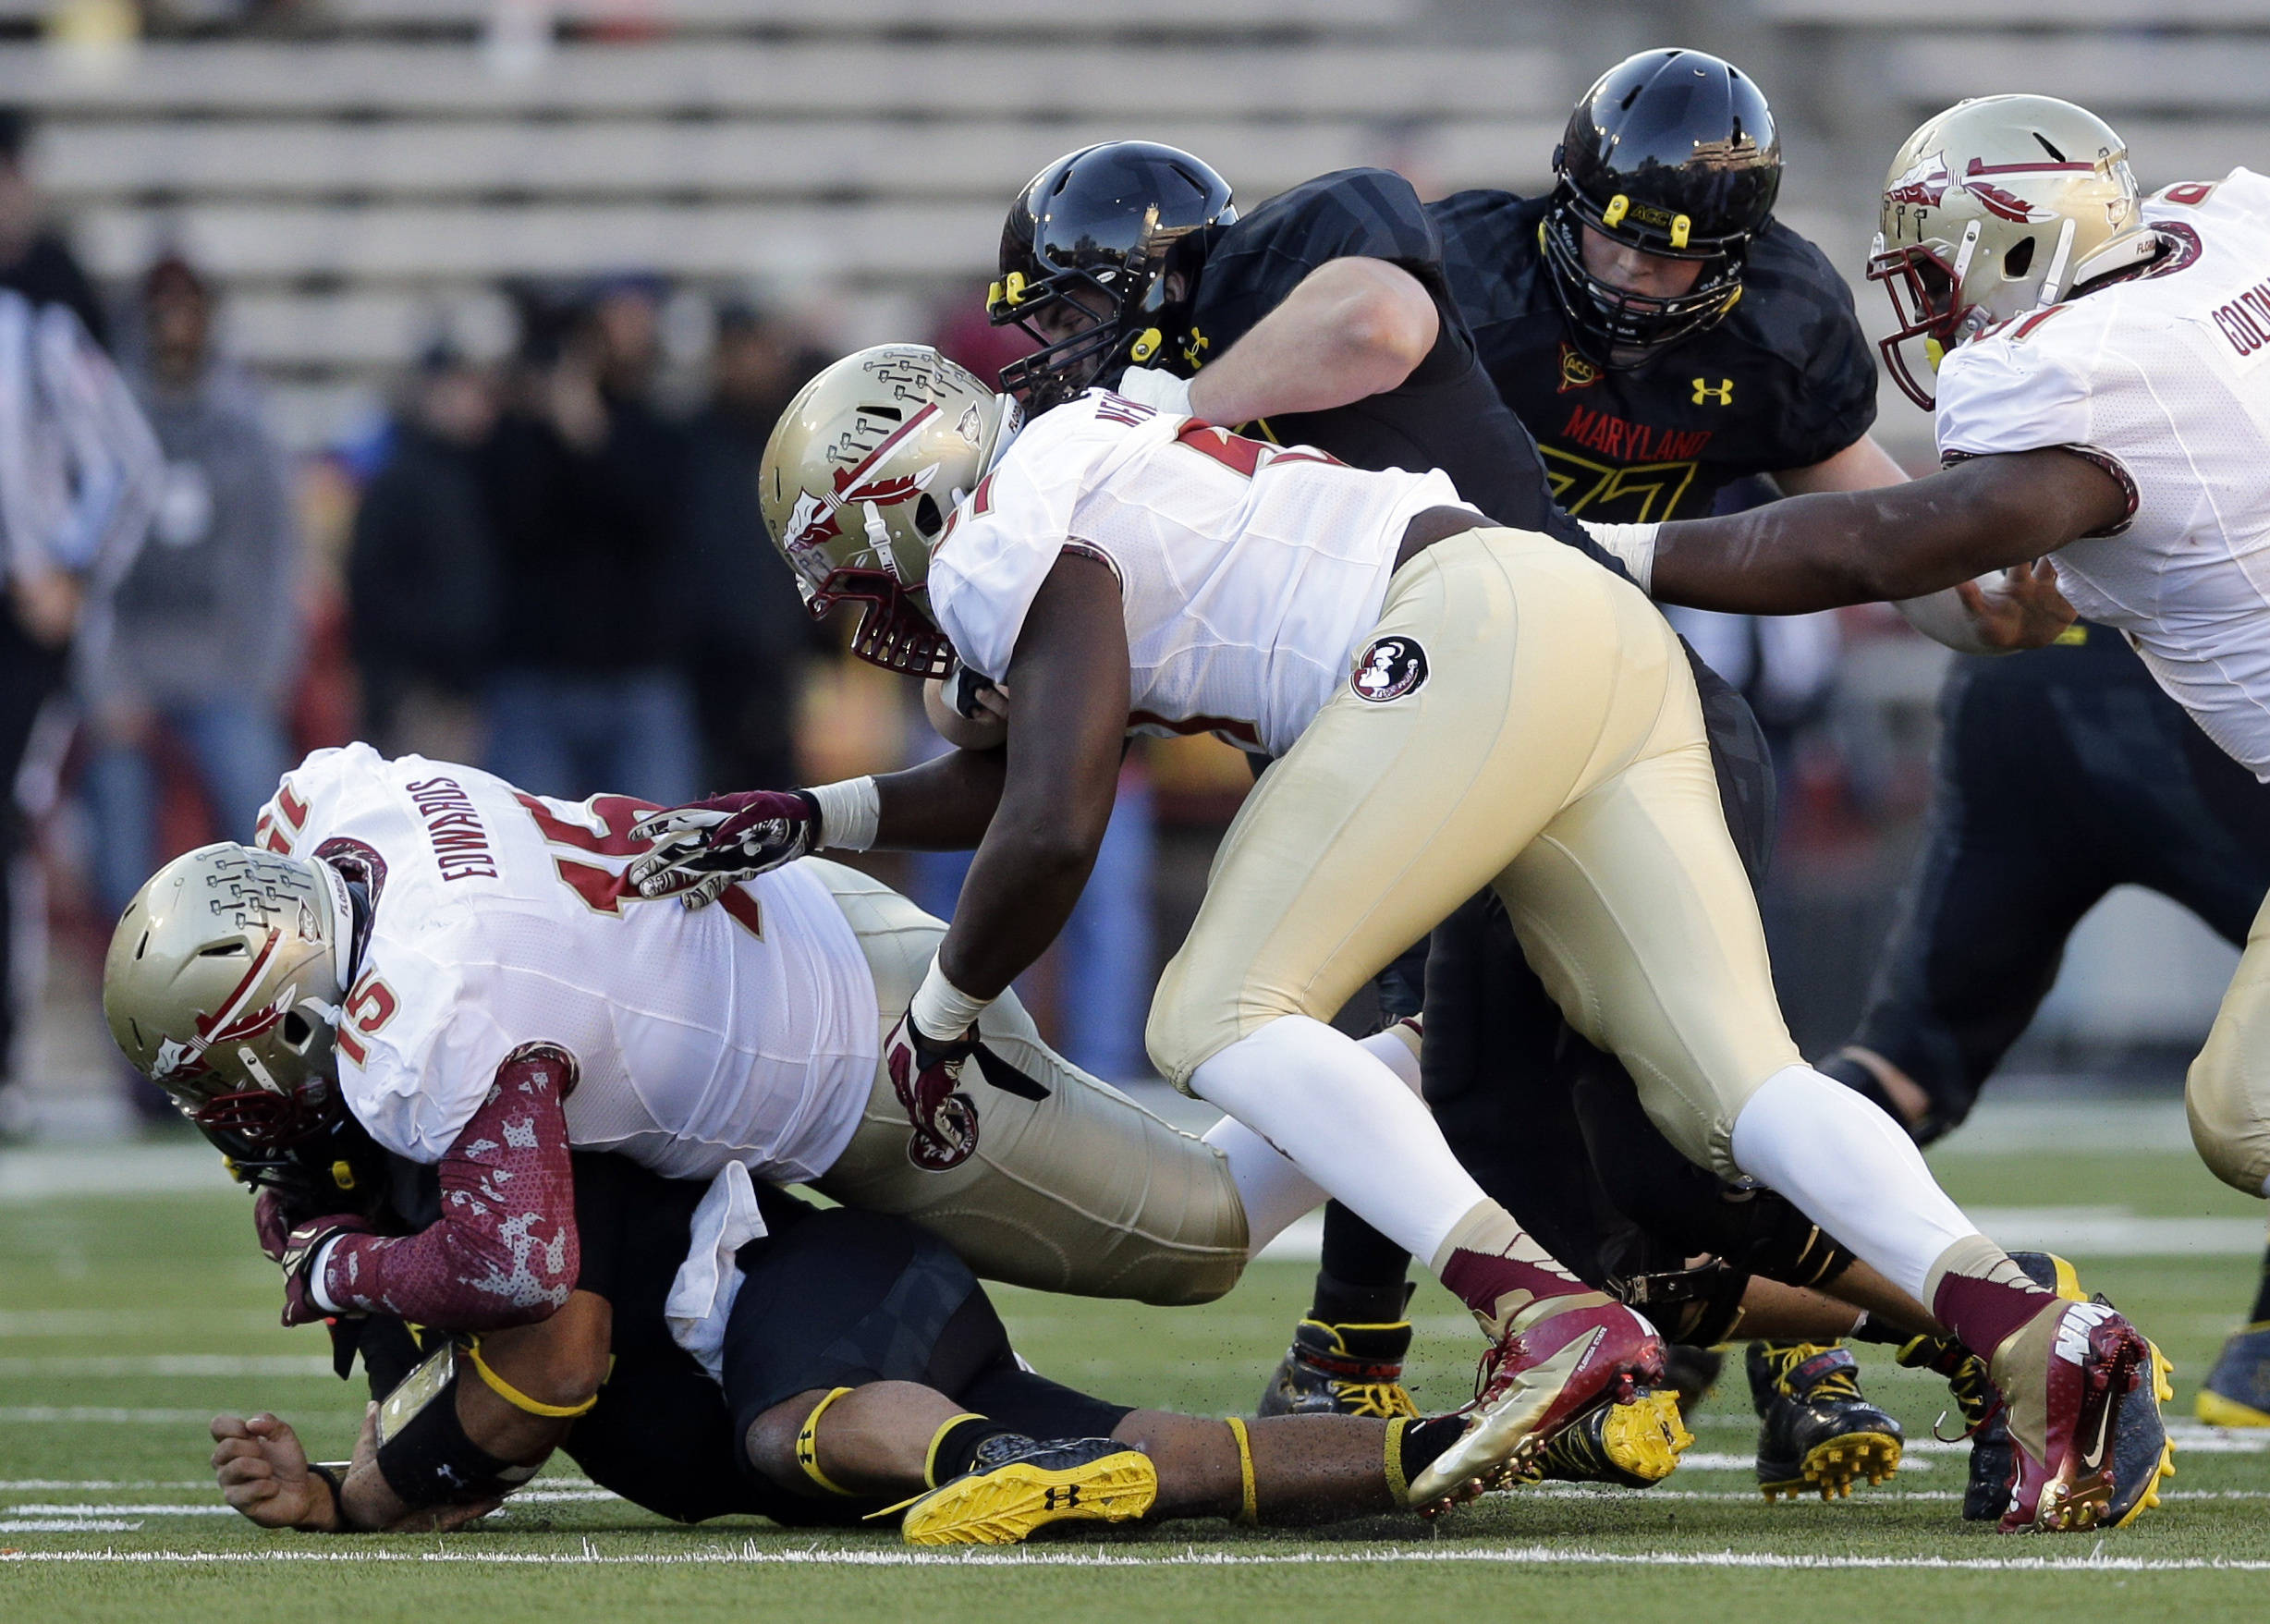 Maryland quarterback Shawn Petty, bottom left, is sacked by defensive end Mario Edwards, Jr. (15) in the second half of an NCAA college football game in College Park, Md., Saturday, Nov. 17, 2012. Florida State won 41-14. (AP Photo/Patrick Semansky)